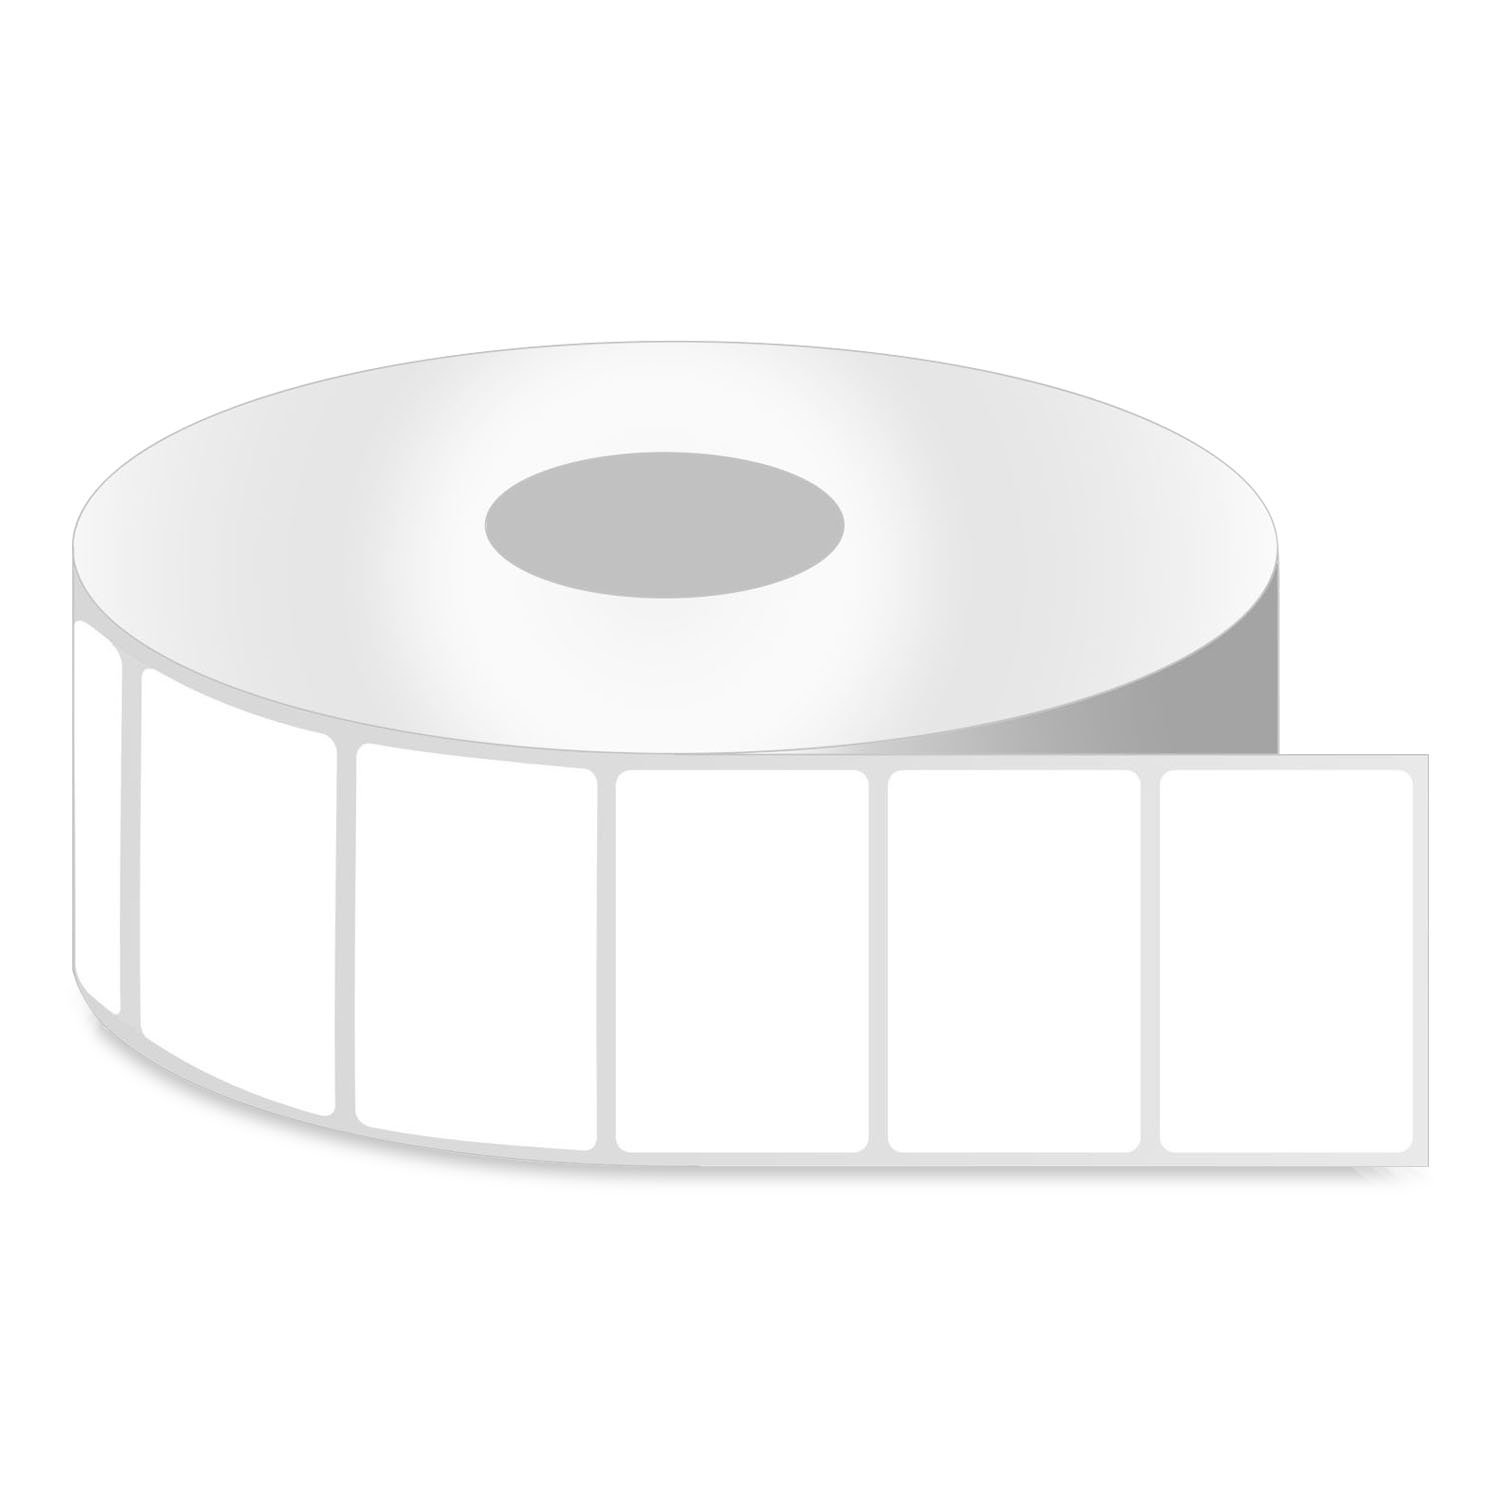 OfficeSmartLabels ZR1200100 Removable 2 x 1 Inch Direct Thermal Labels Compatible with Zebra (4 Rolls, White, 1300 Labels Per Roll, 1 inch Core)